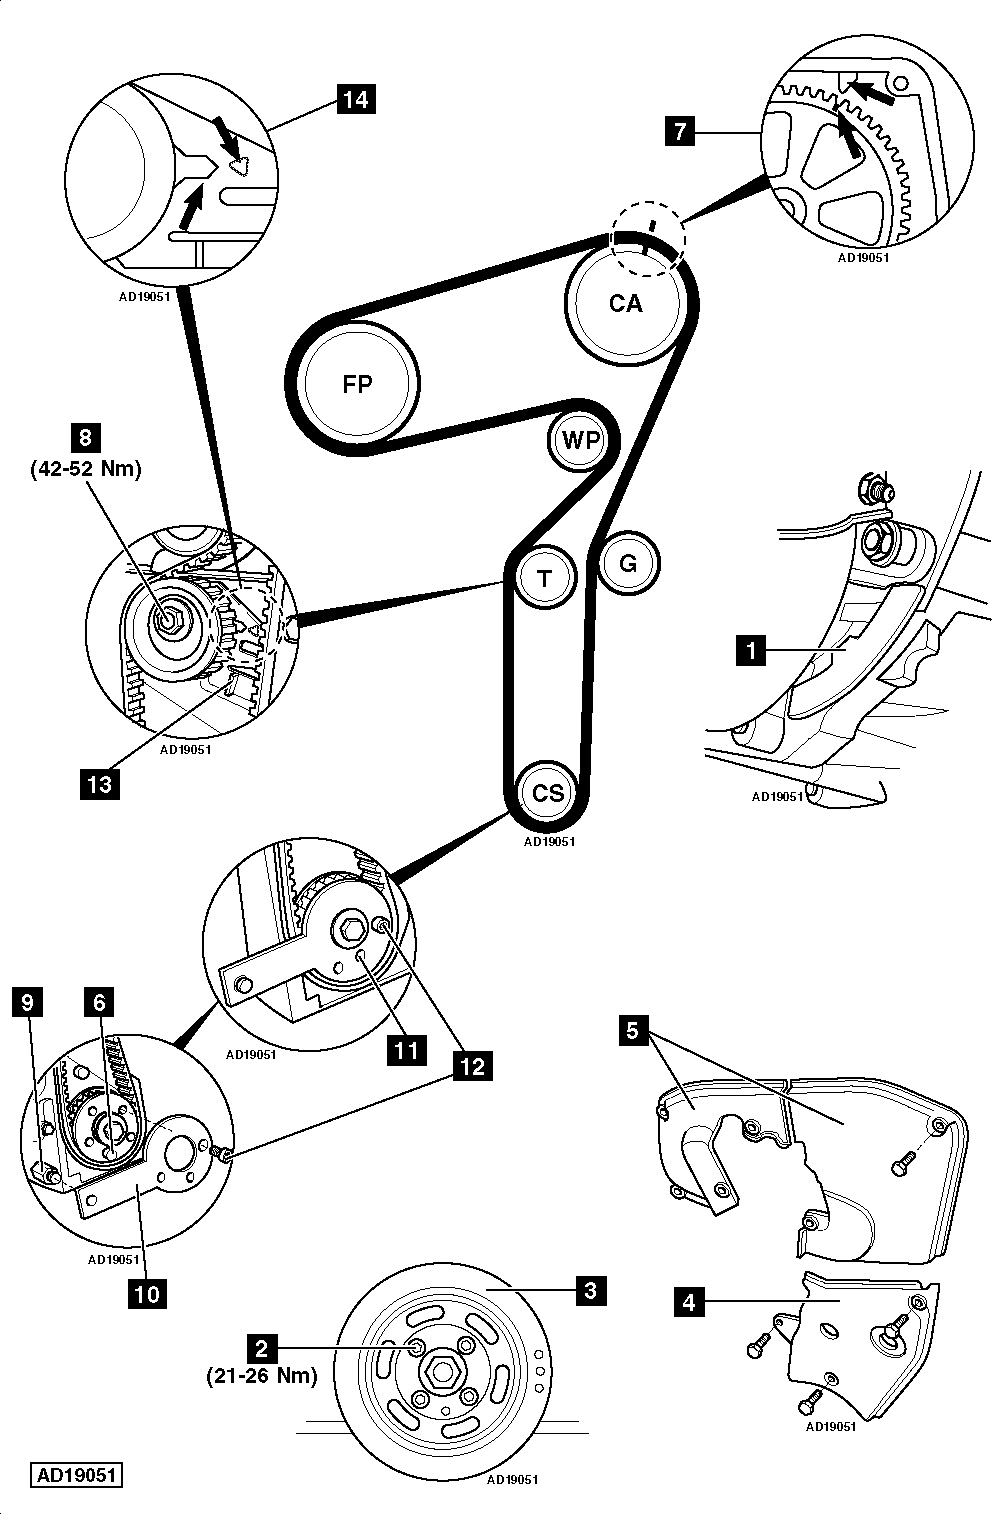 How-to-Replace-timing-belt-on-Alfa-Romeo-156-2.4-JTD-2002-2005